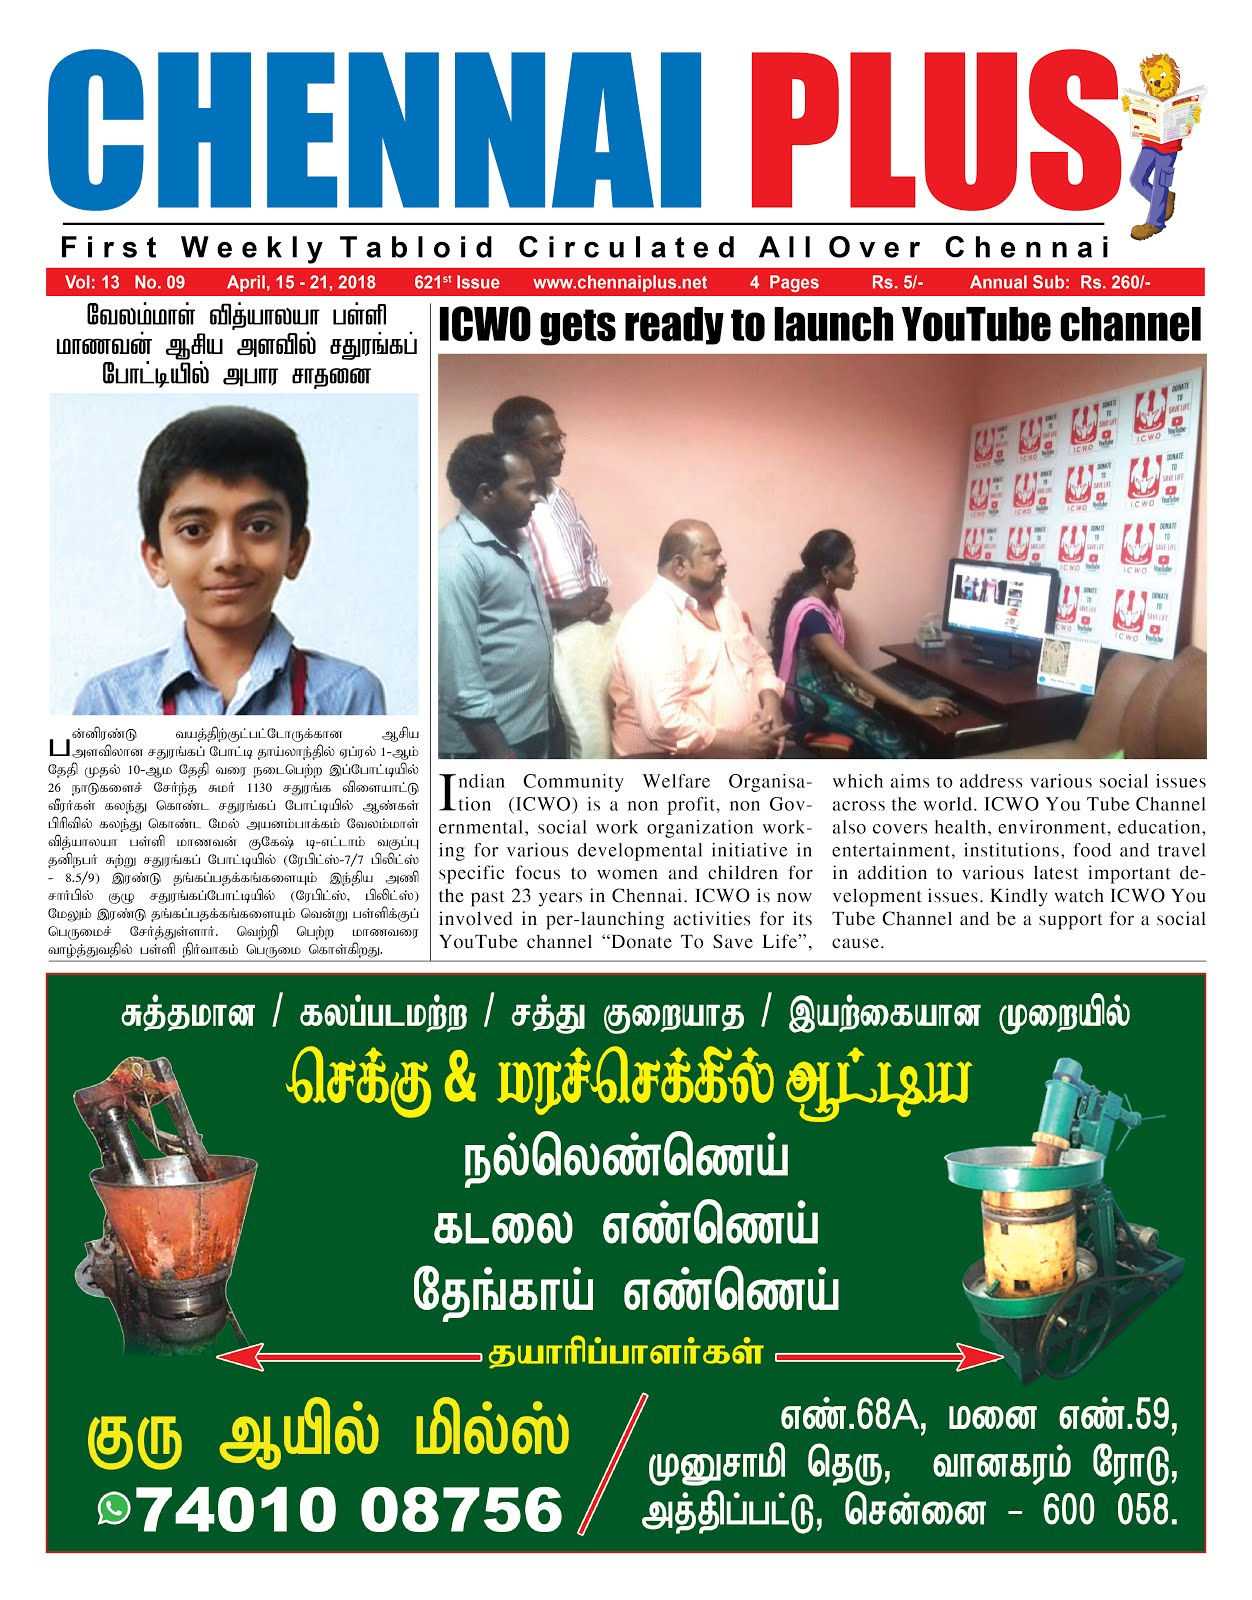 Chennai Plus_15.04.2018_Issue